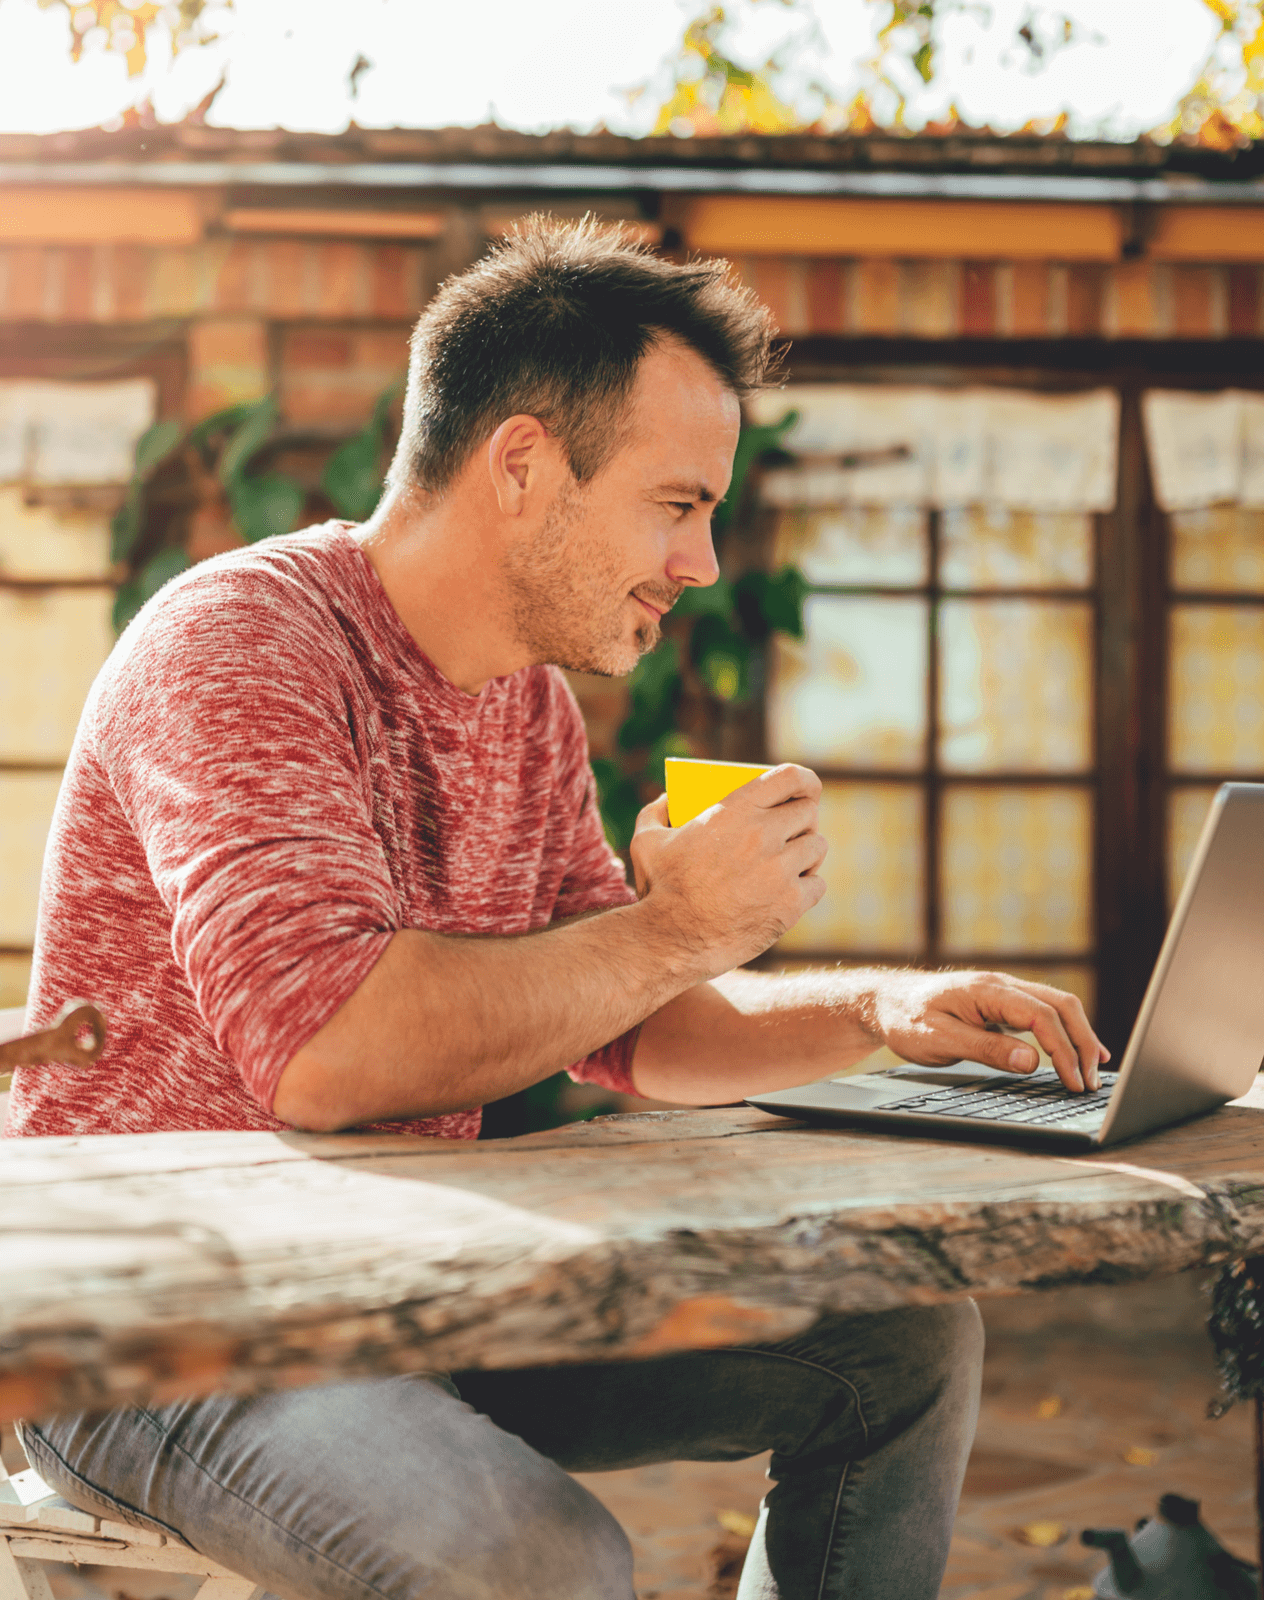 Caucasian man in a pink shirt working on a laptop computer while drinking a cup of coffee in his backyard.